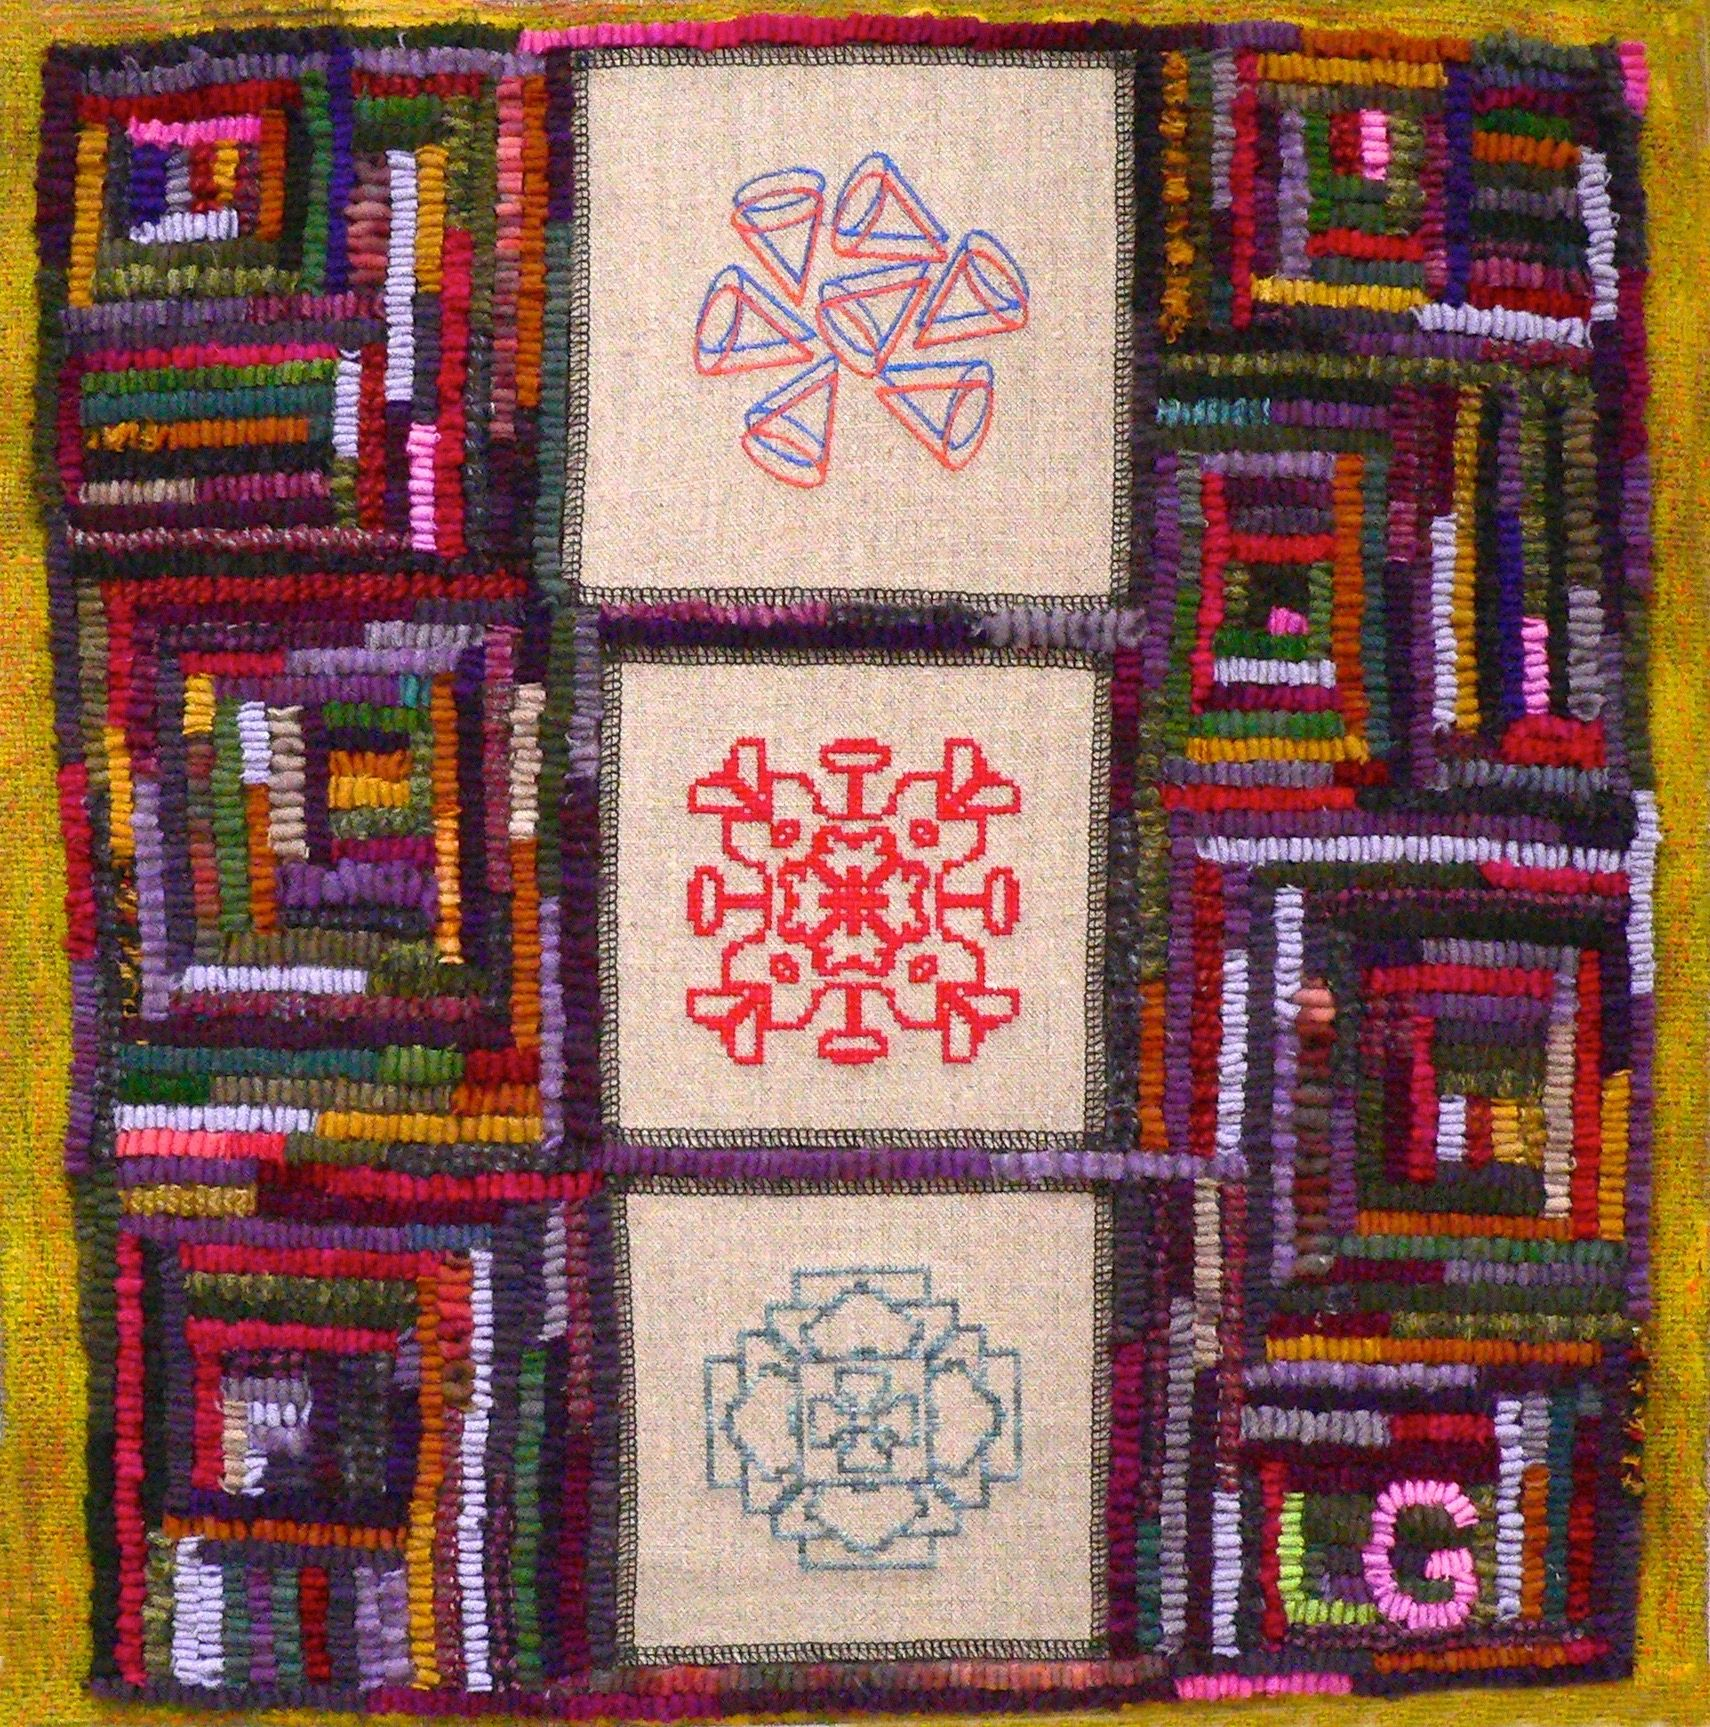 "{""blocks"":[{""key"":""9frt1"",""text"":""The Geometry Lesson 24\""x24\"" Embroidery, Encaustic and Rug Hooking on Linen"",""type"":""unstyled"",""depth"":0,""inlineStyleRanges"":[{""offset"":0,""length"":19,""style"":""BOLD""}],""entityRanges"":[],""data"":{}}],""entityMap"":{}}"